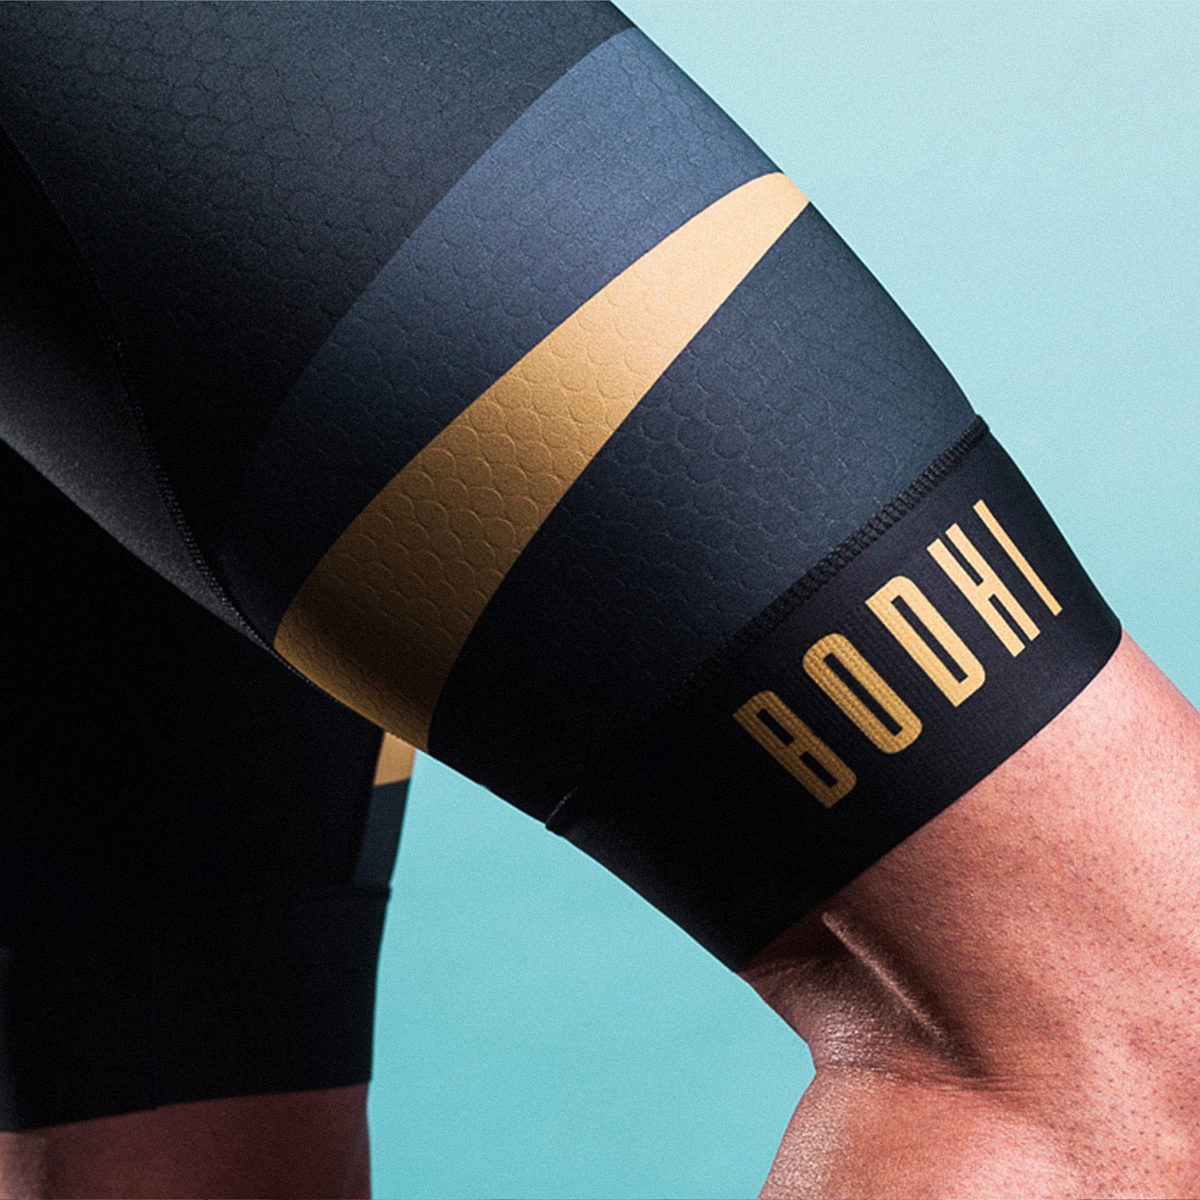 Bodhi cycling golden eye men bib short